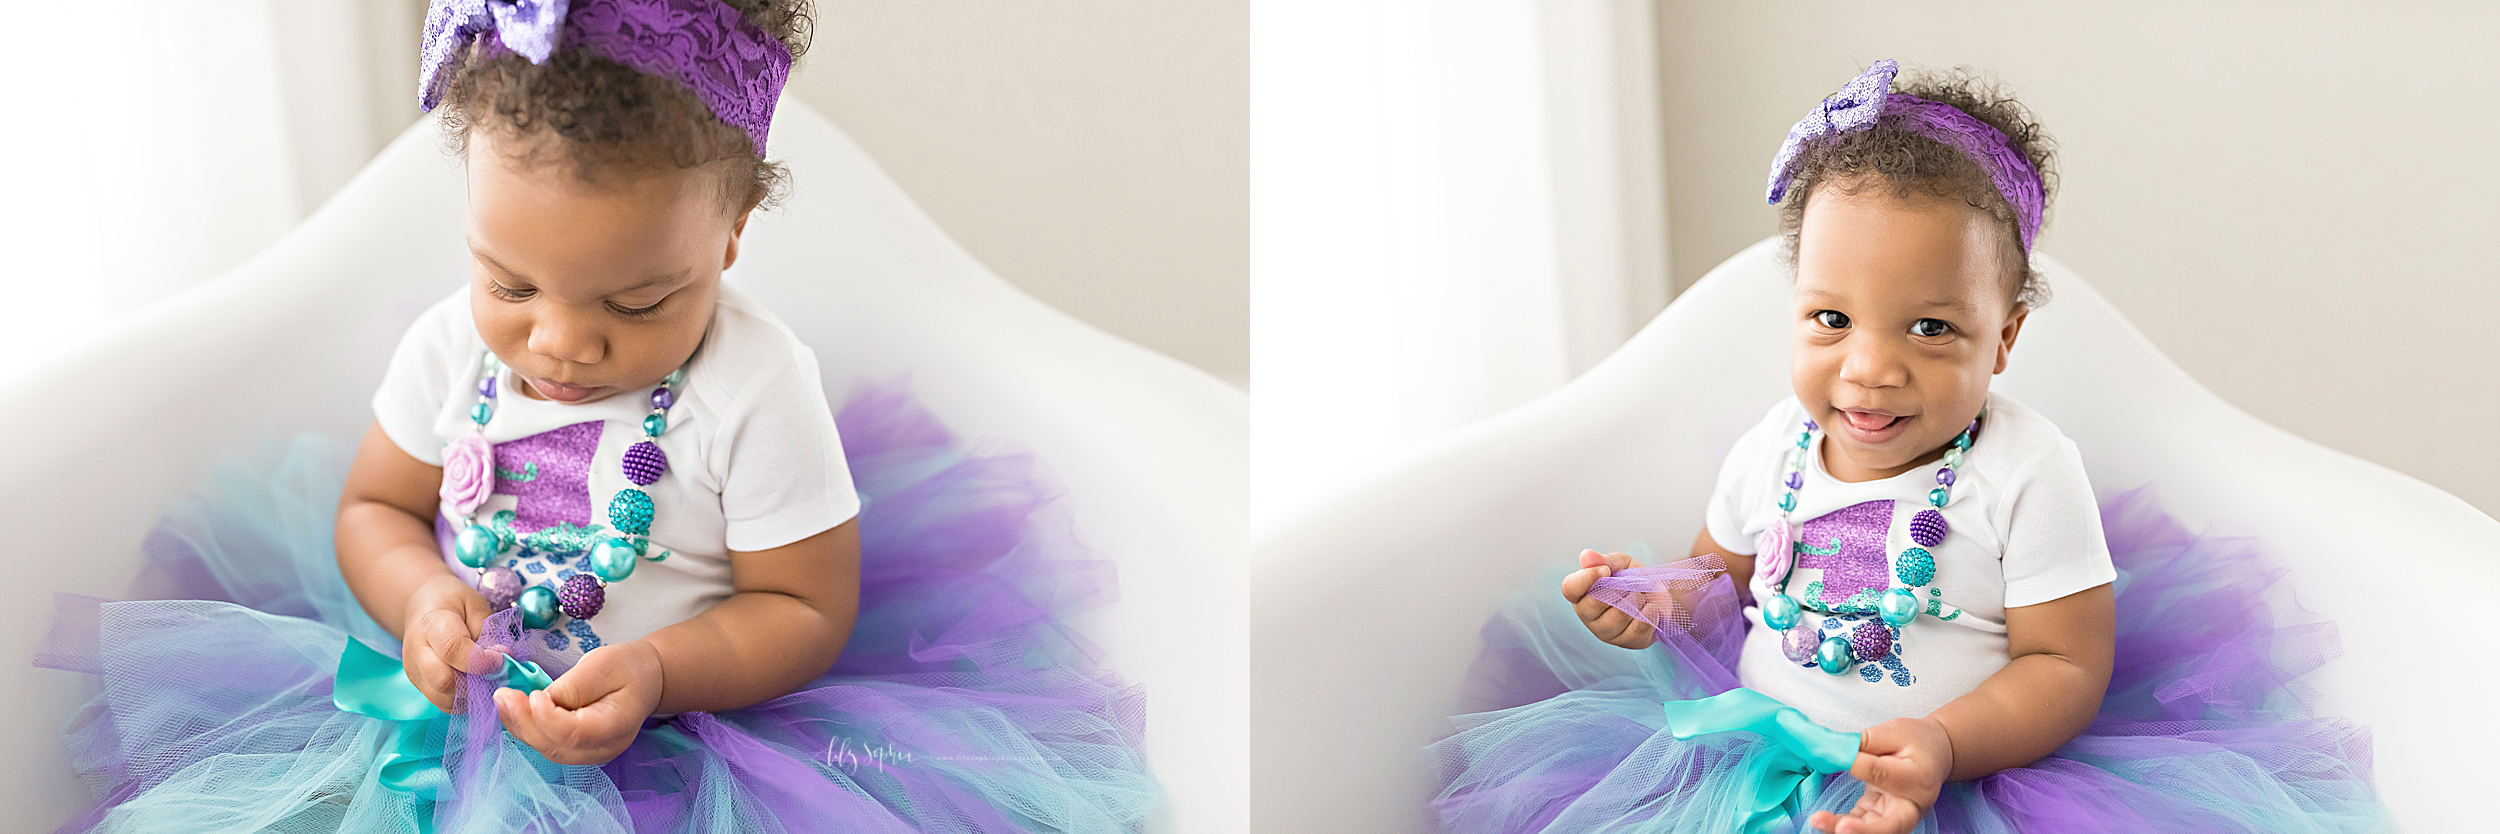 atlanta-buckhead-brookhaven-decatur-lily-sophia-photography--photographer-portraits-grant-park-intown-first-birthday-tutu-cake-smash_0991.jpg